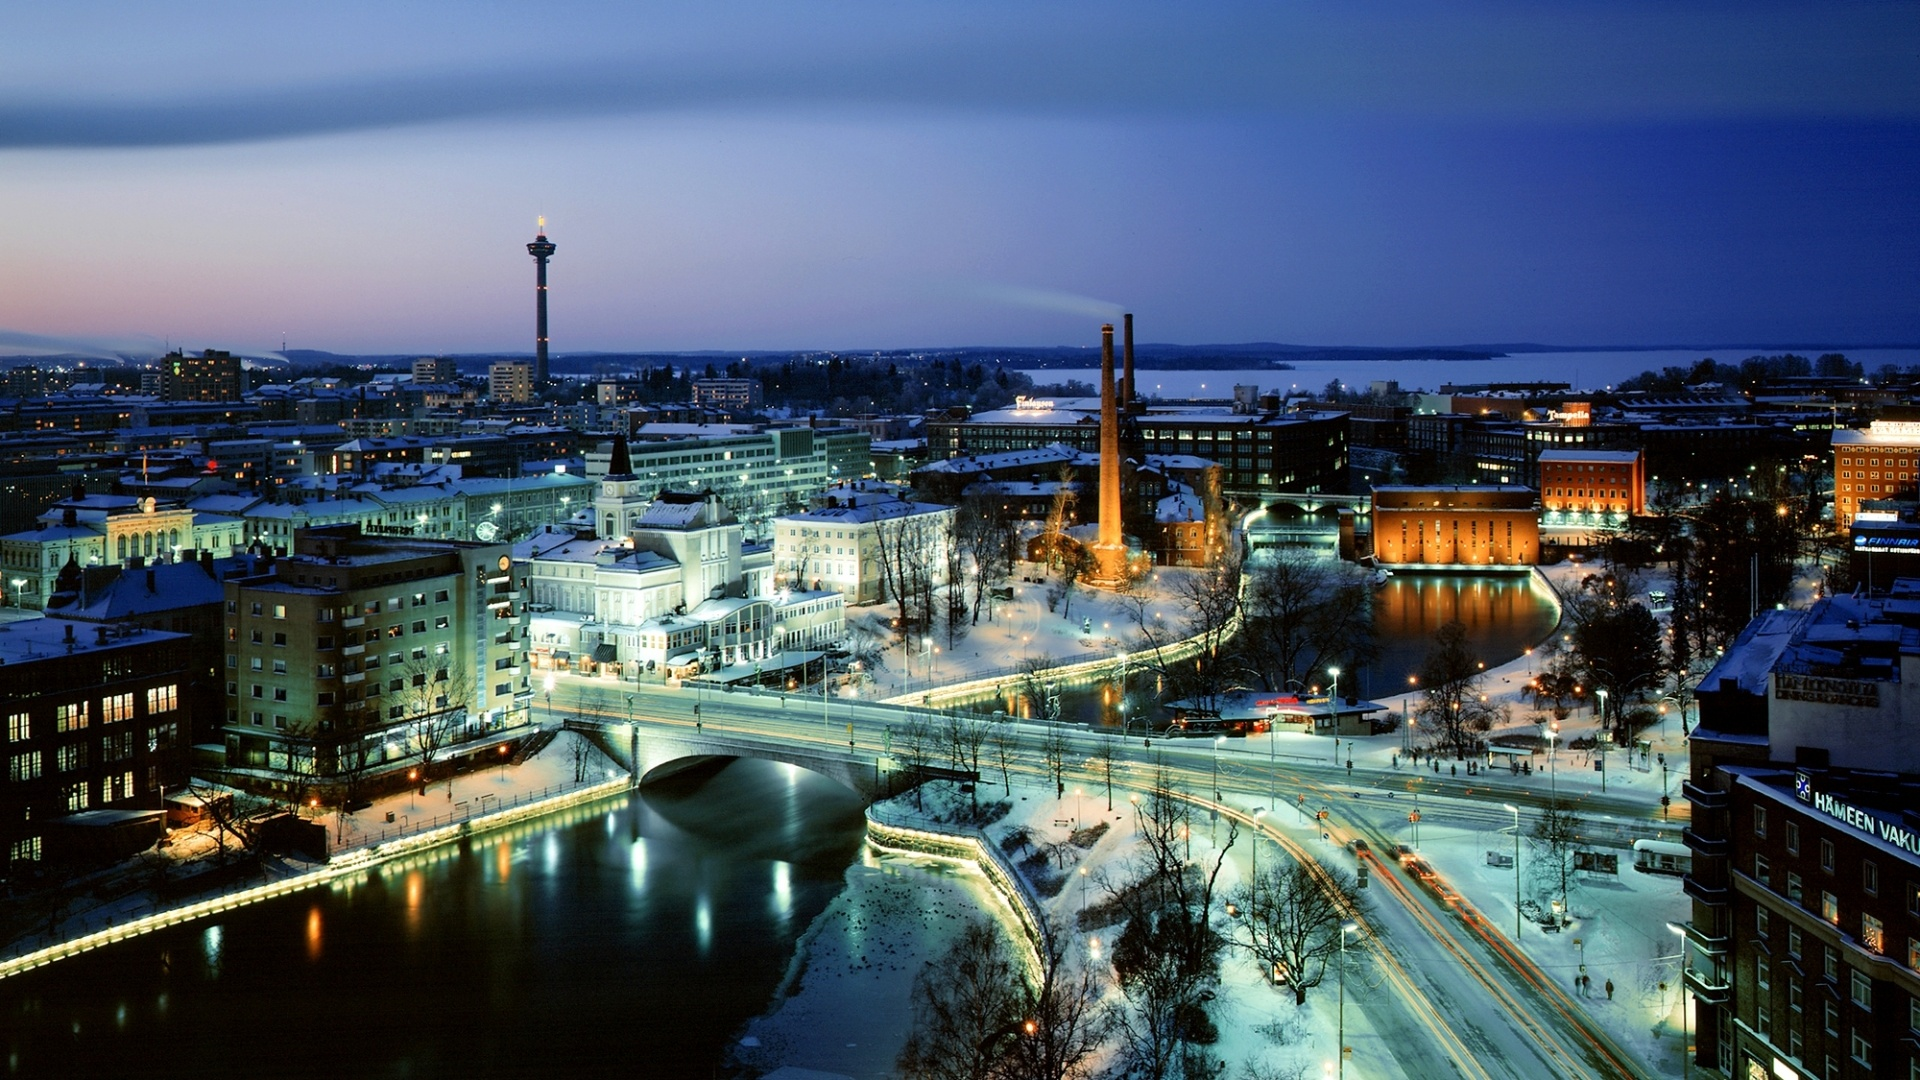 Night View Hd Wallpaper Tampere Finland Wallpapers 1920x1080 786532